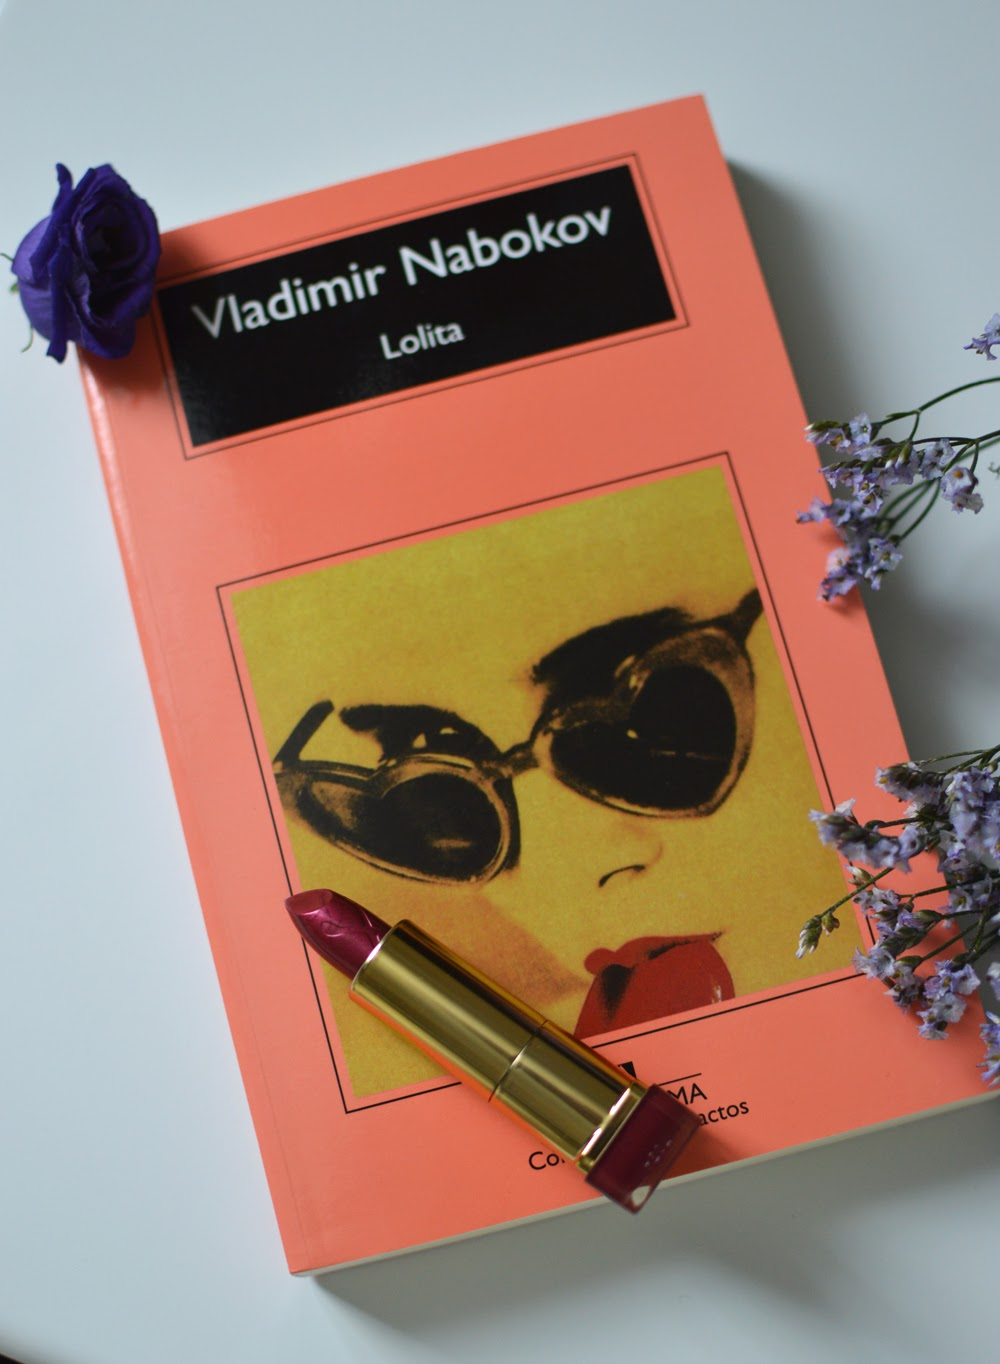 Colour Elixir Lipstick in Mulberry